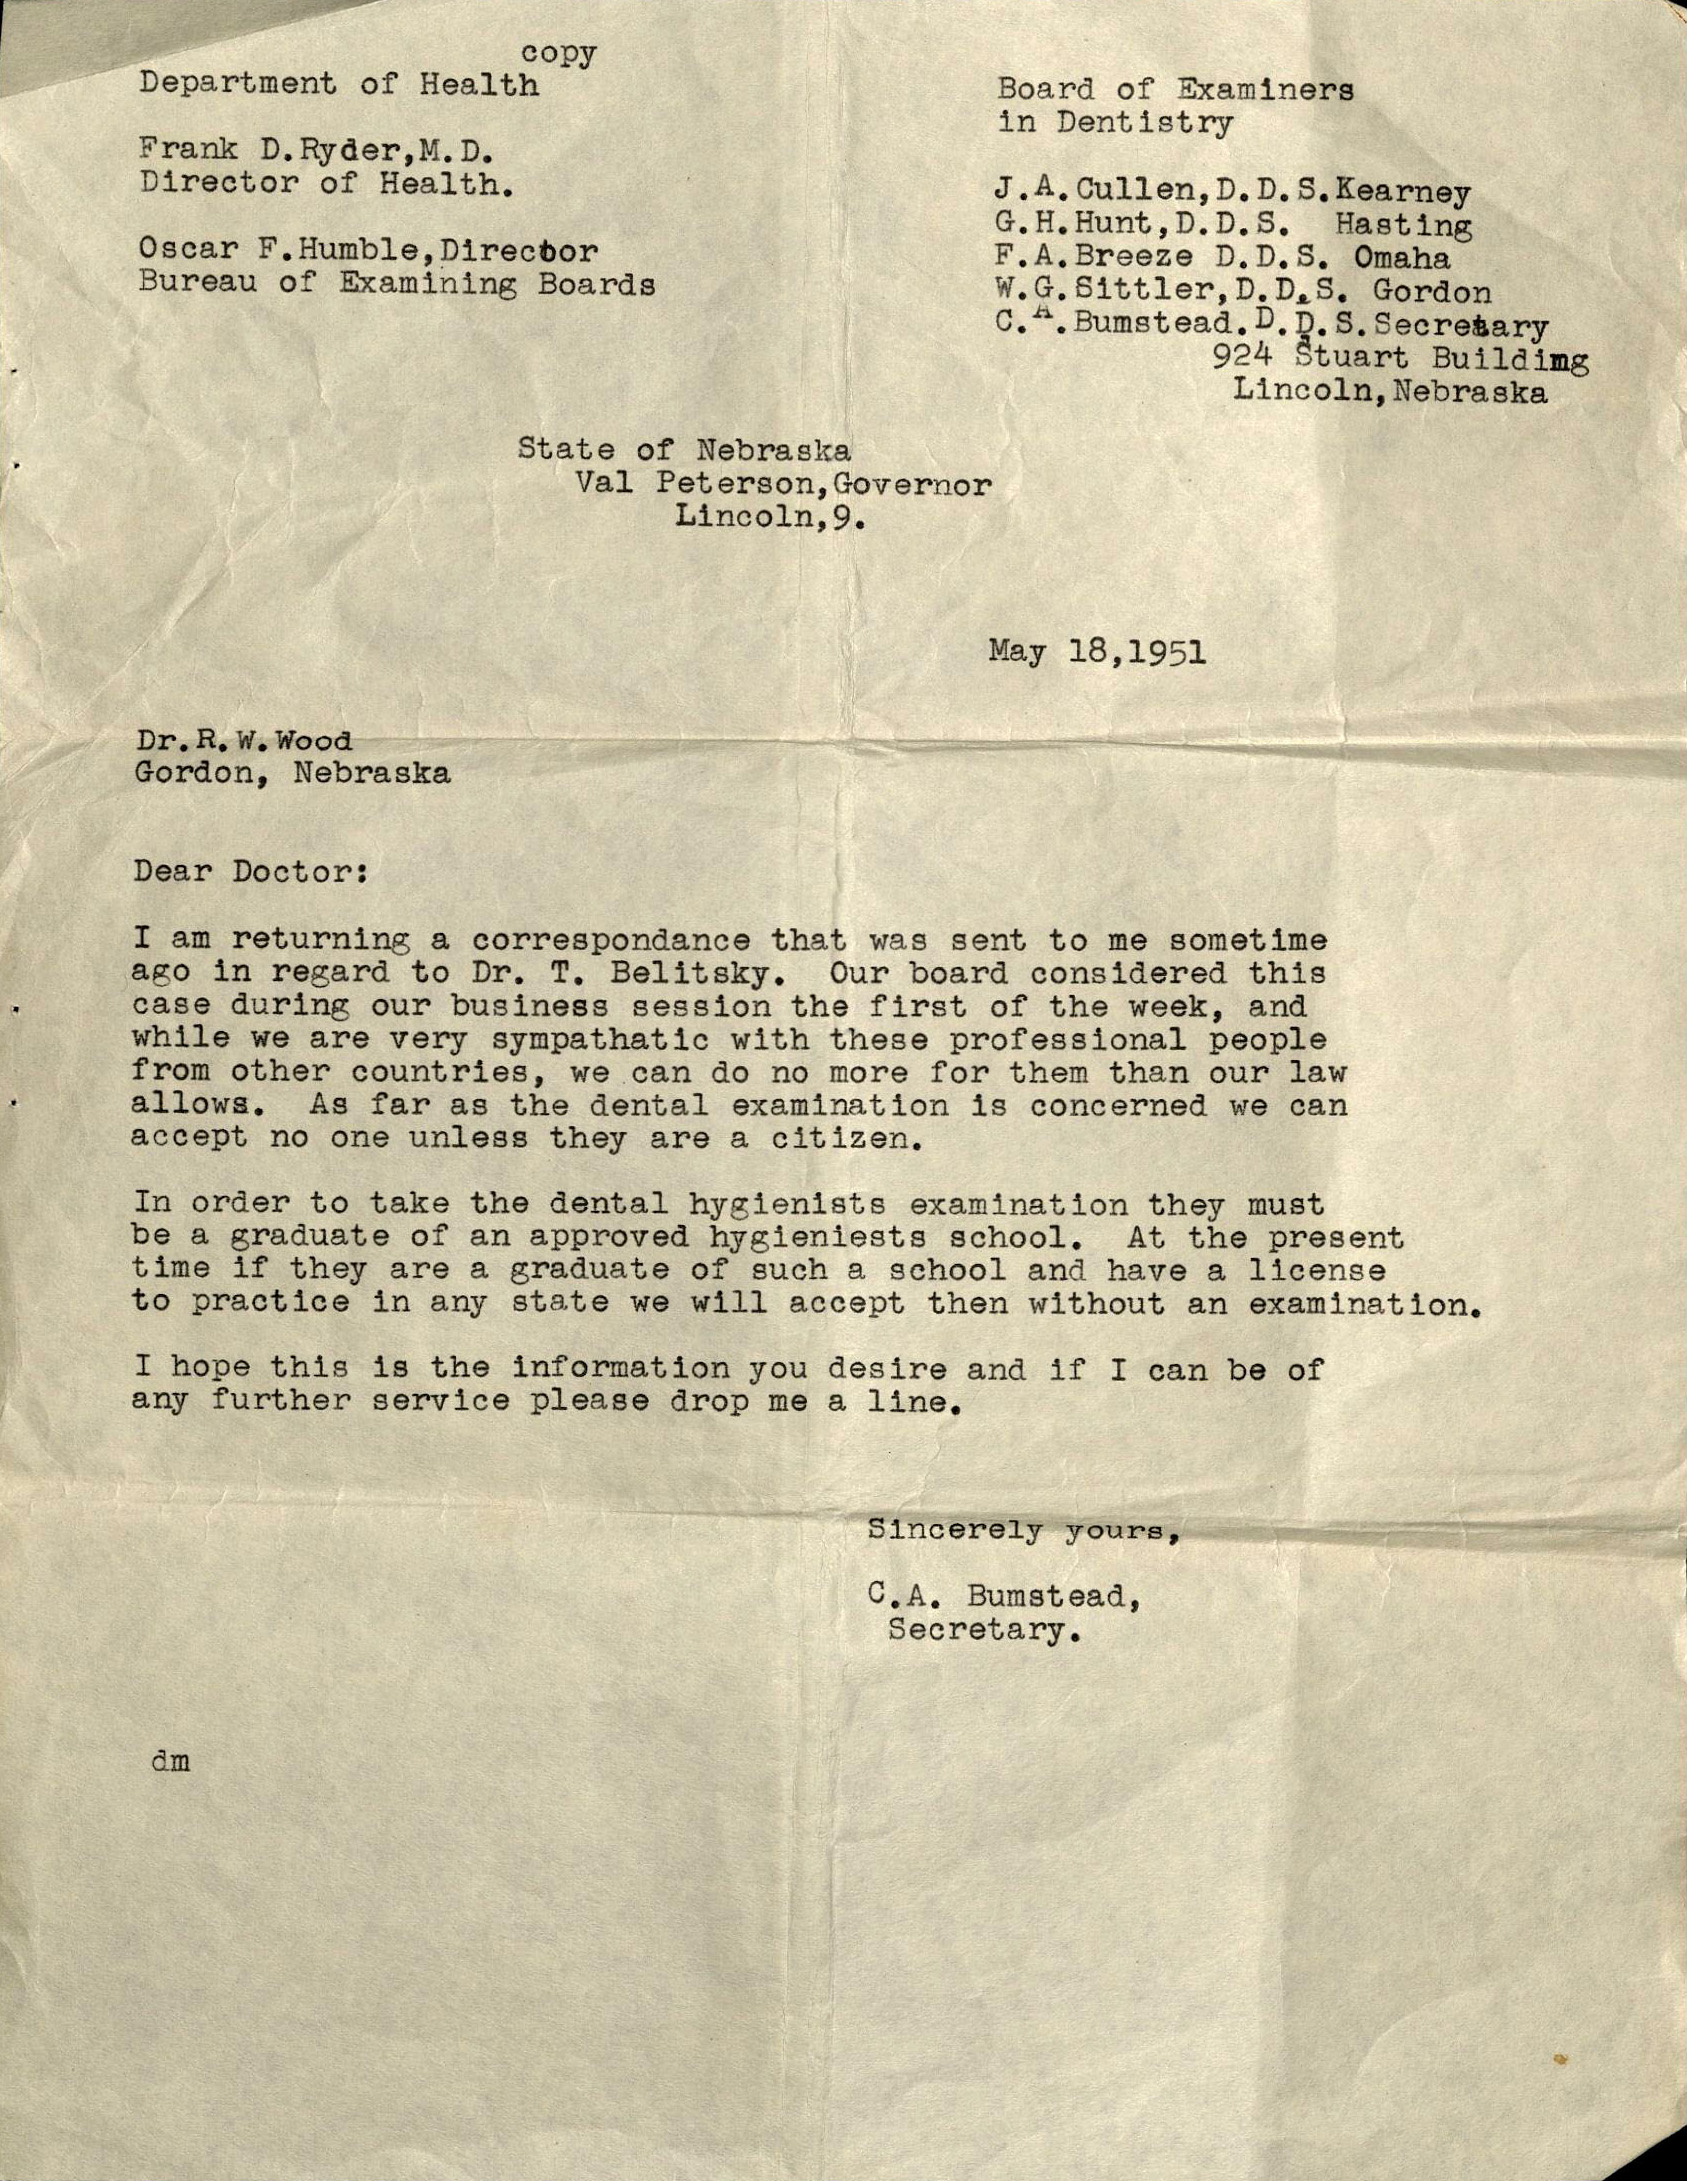 Letter Of Recommendation For A Dentist